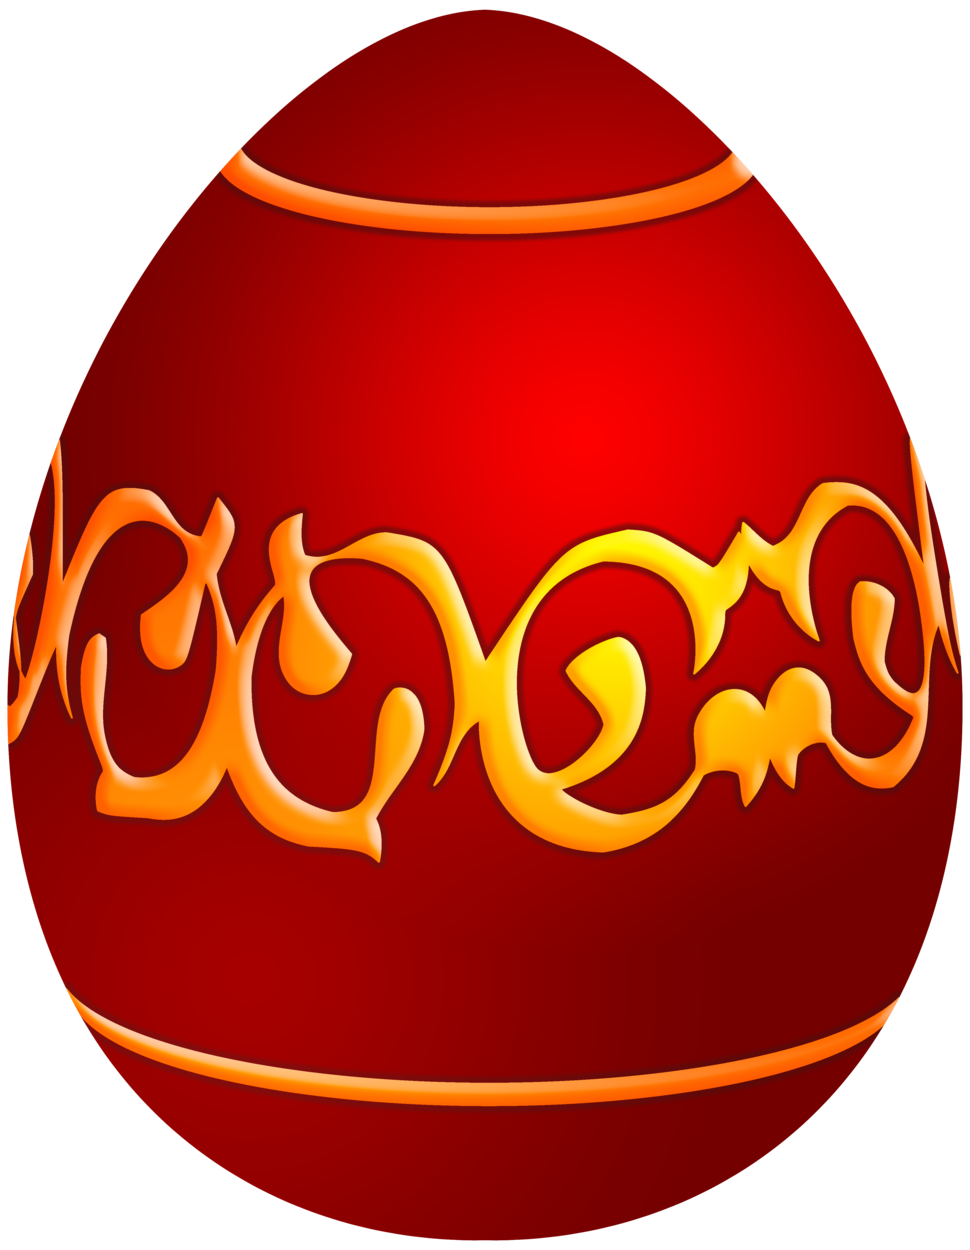 Easter Decorative Red Egg PNG Clip Art